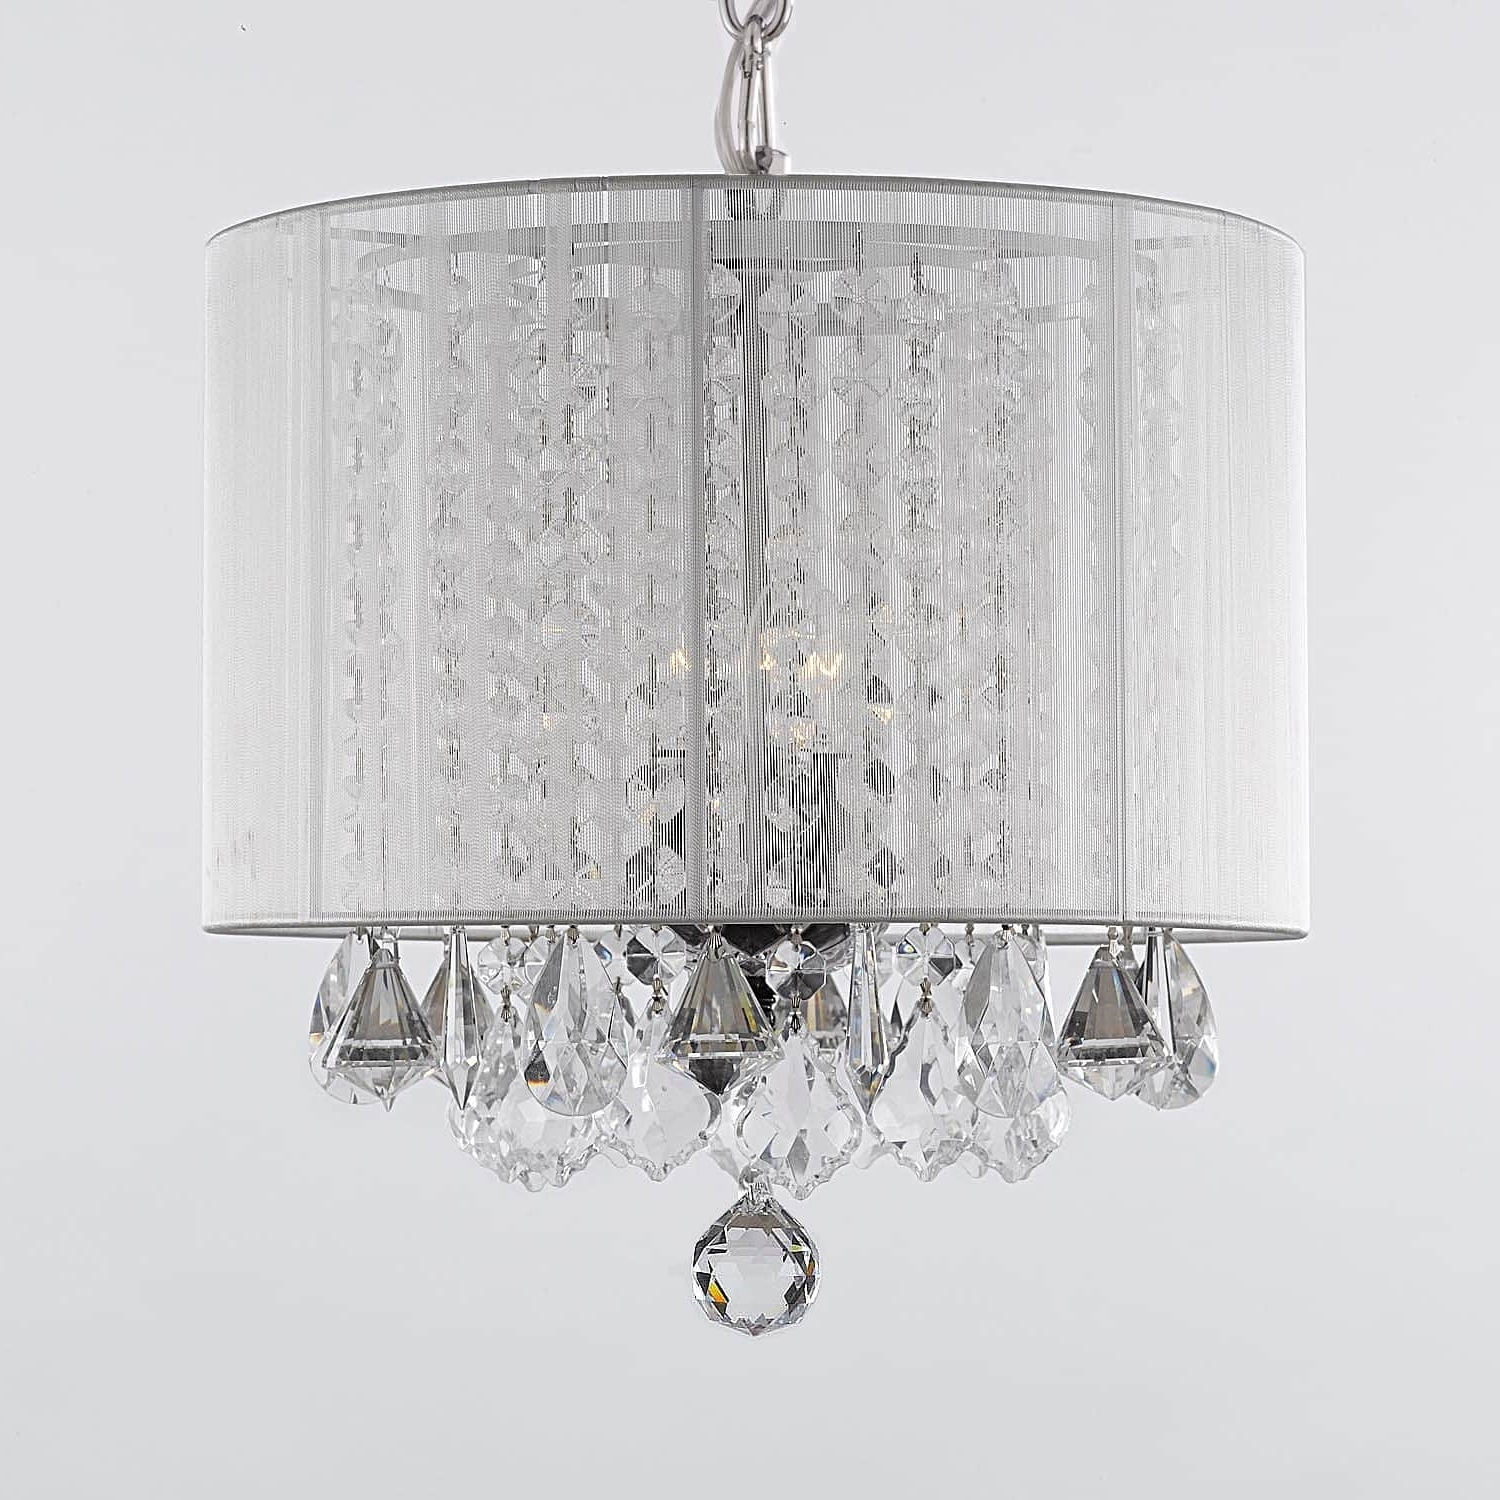 3 Light Crystal Chandeliers For Widely Used Gallery 3 Light Crystal Chandelier With Shade – Free Shipping Today (View 14 of 20)